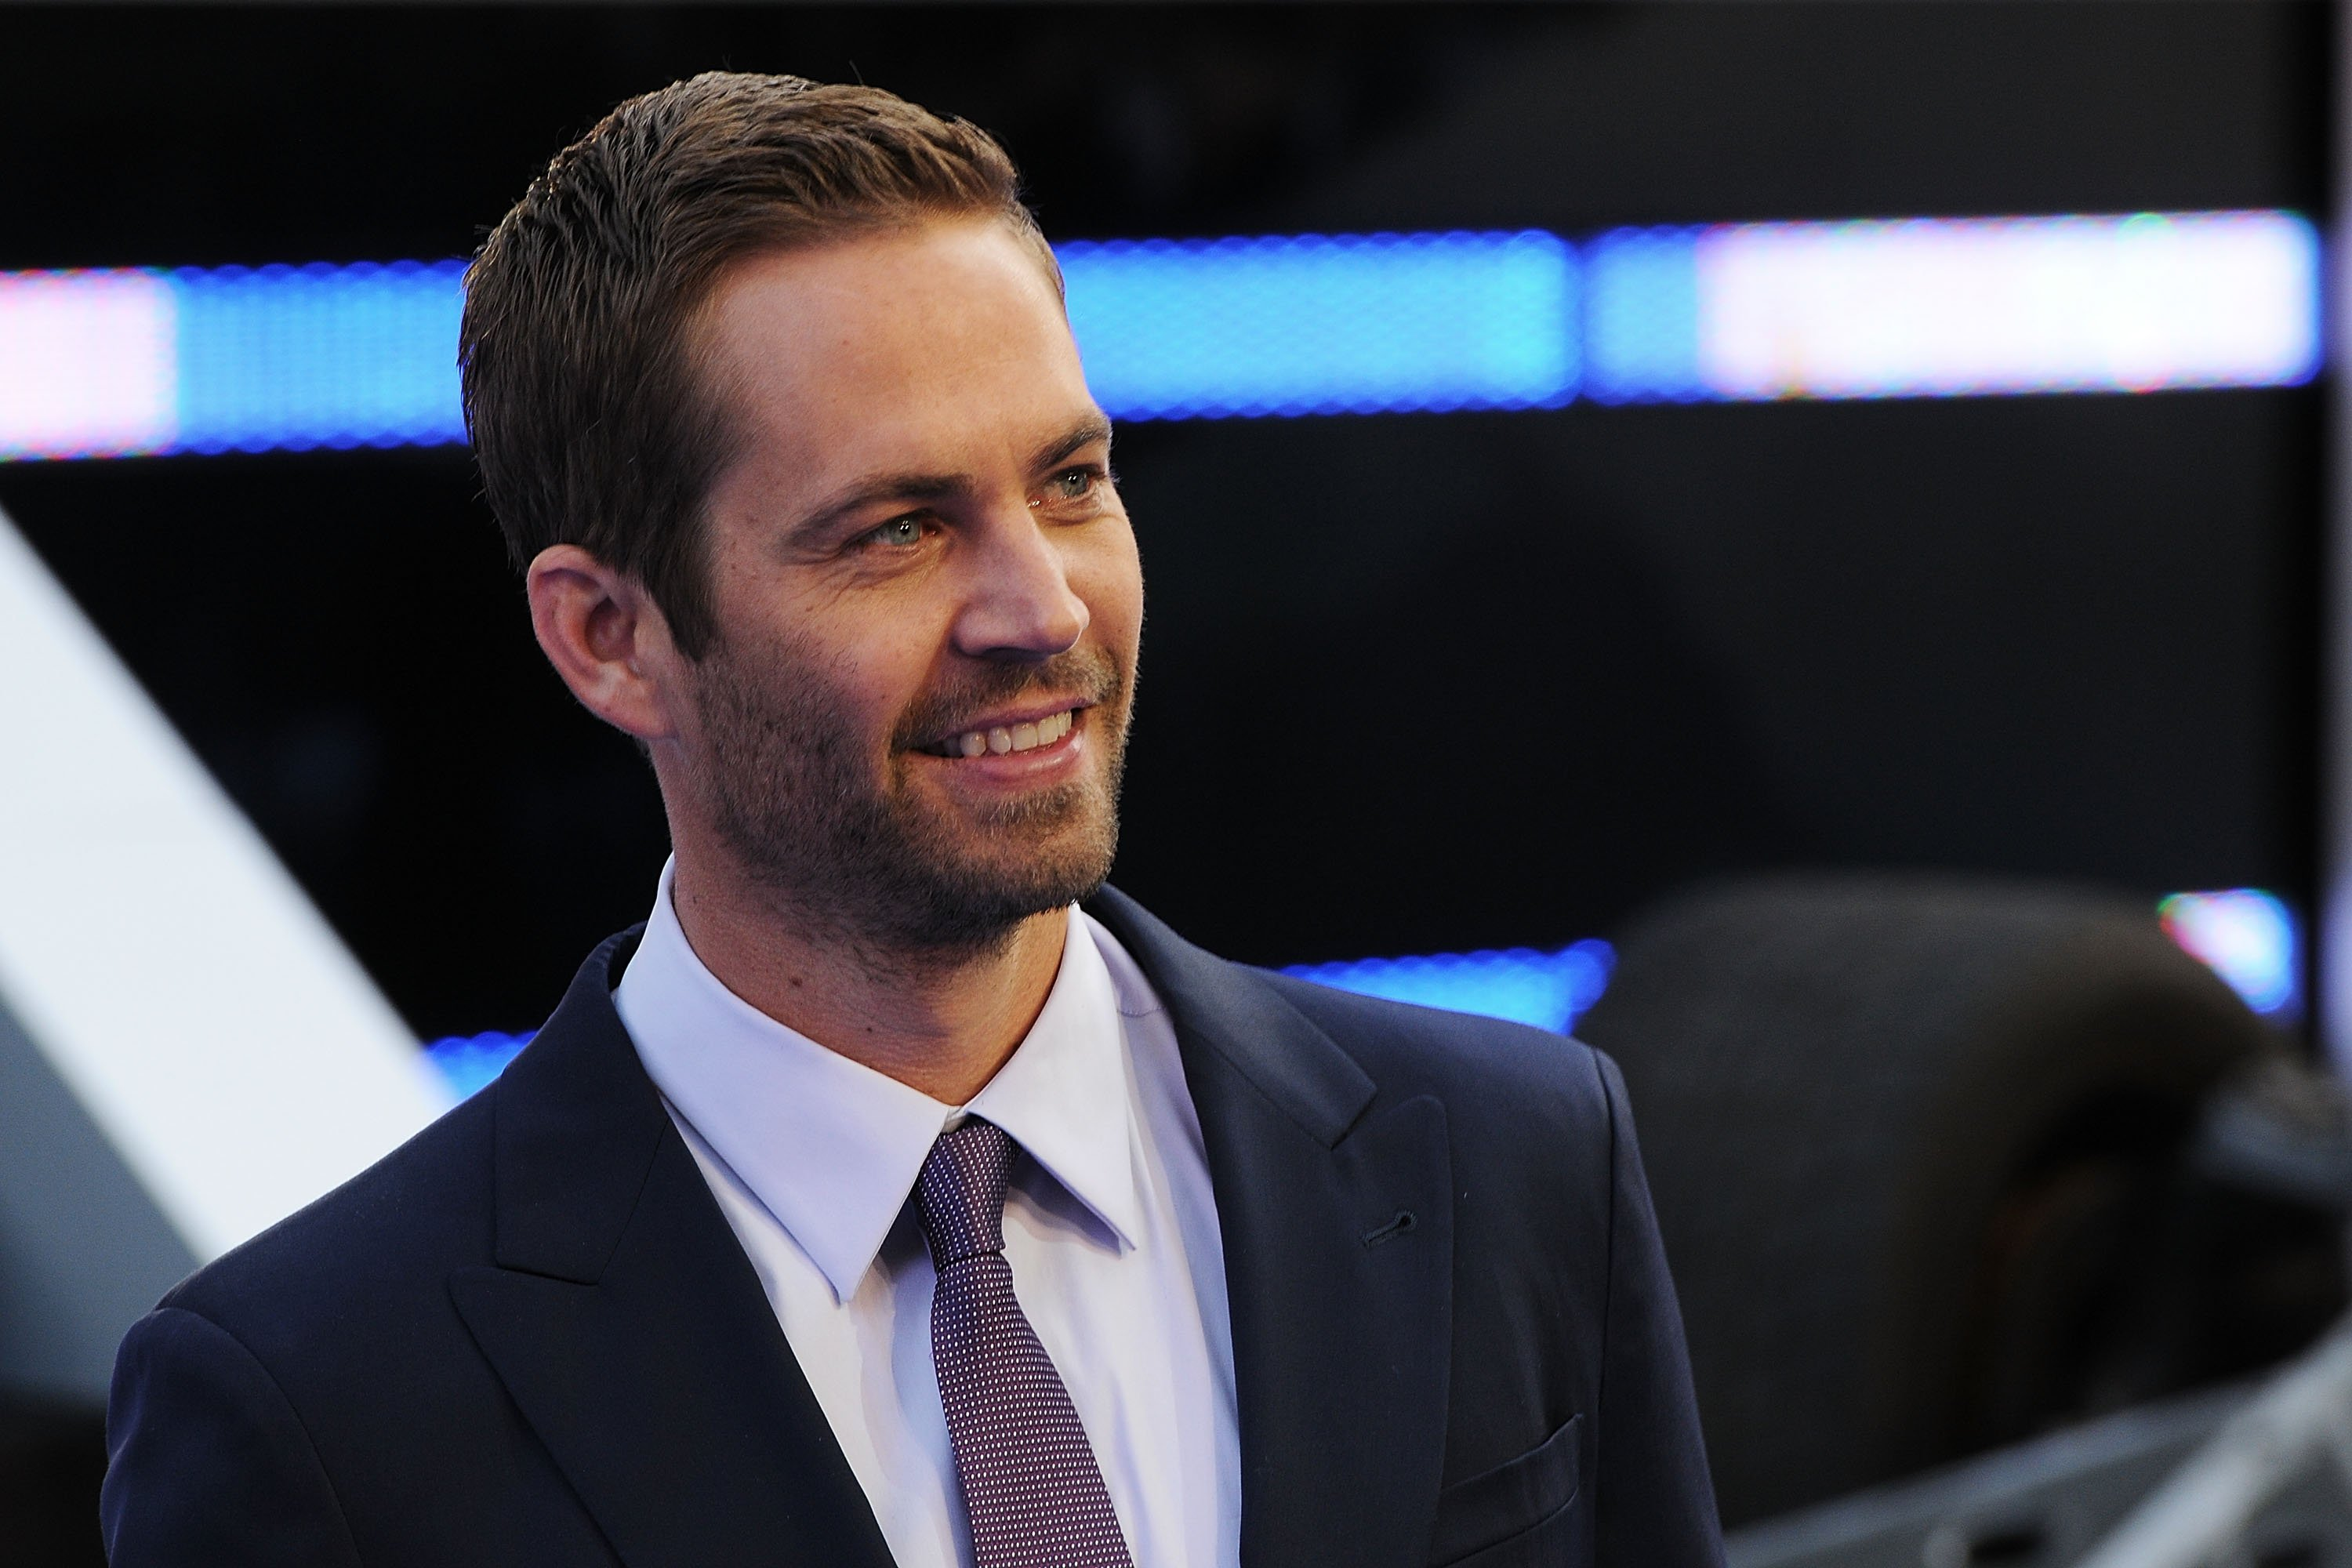 Paul Walker attends the World Premiere of 'Fast & Furious 6' at Empire Leicester Square on May 7, 2013 in London, England   Photo: Getty Images